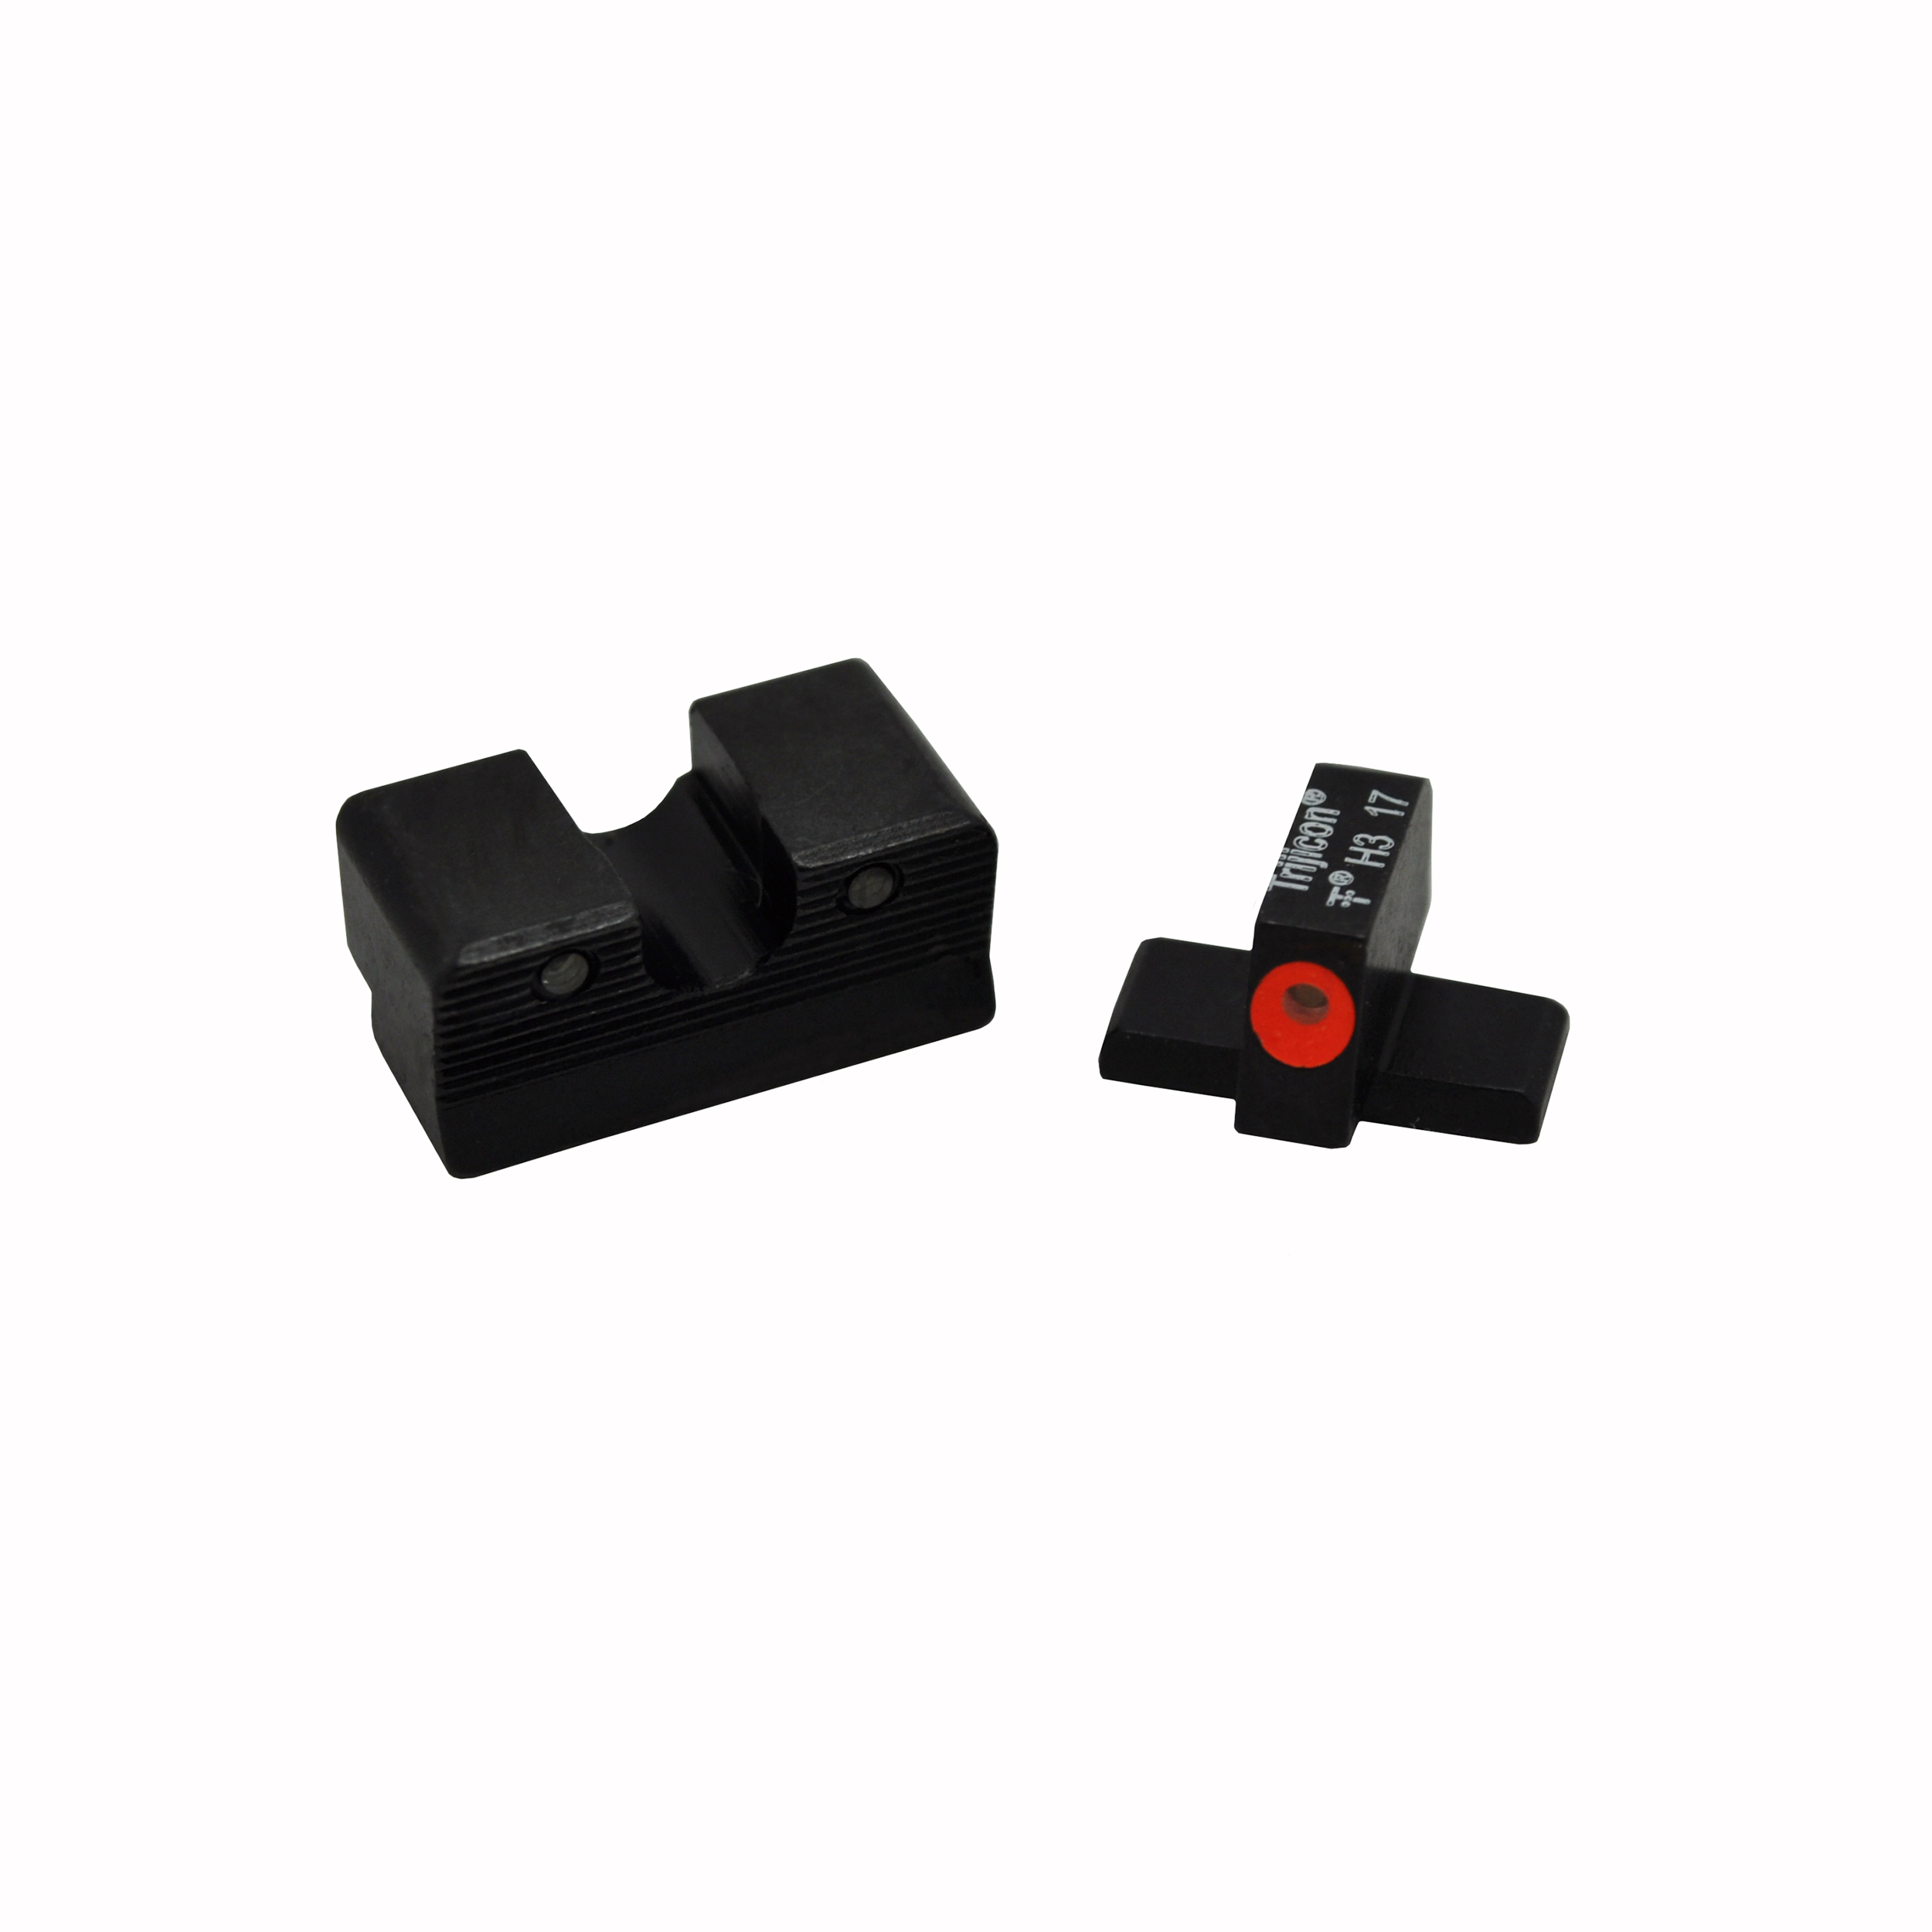 Trijicon HD XR Night Sight Set Sig Sauer Calibrated for .40 S&W and .45ACP, Orange Front Outline Lamp by Trijicon